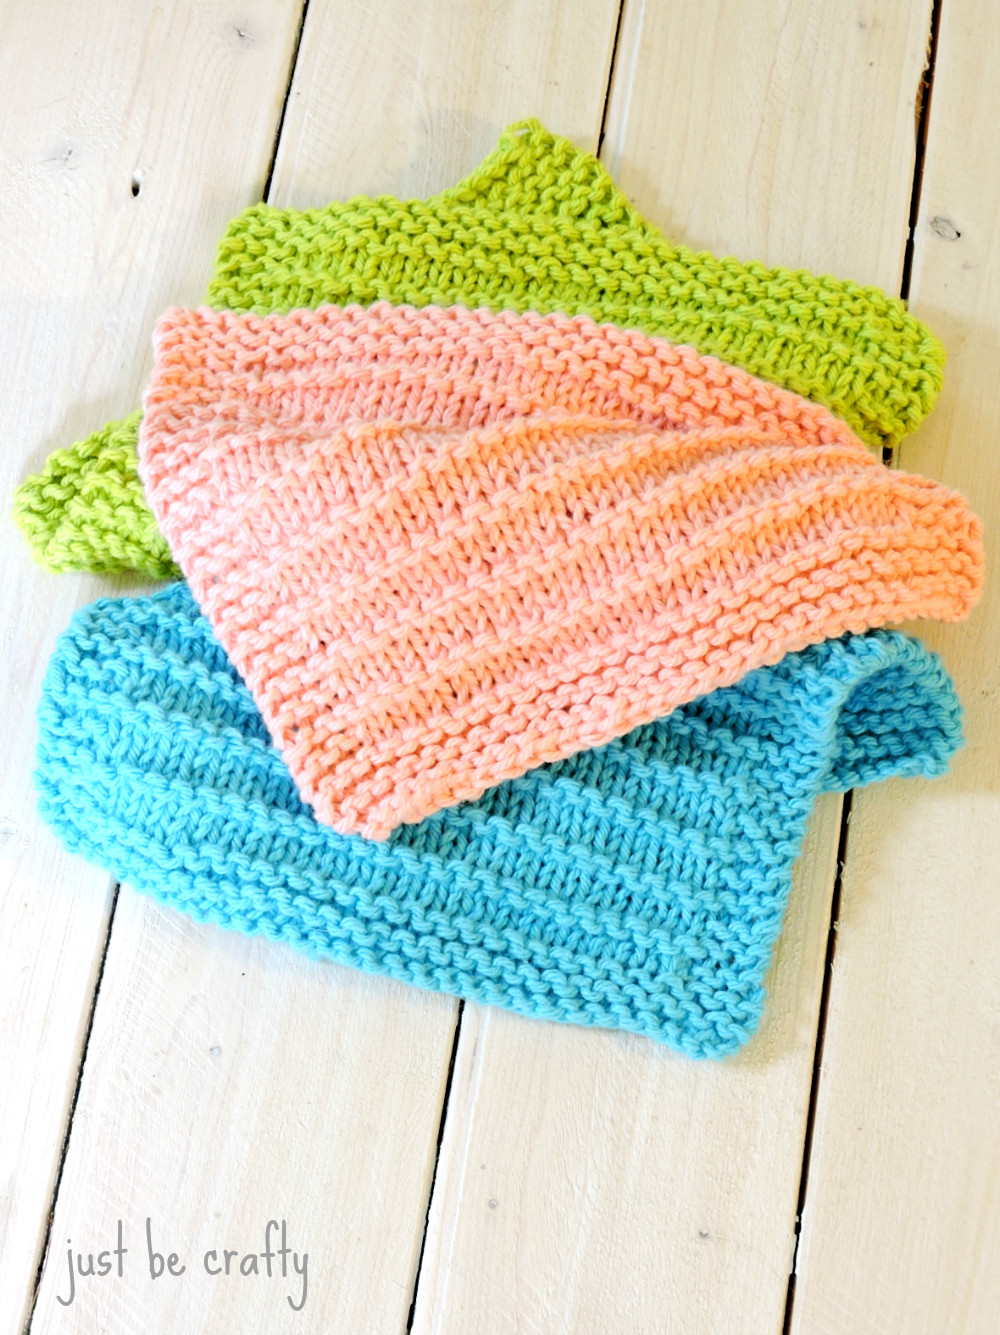 Knitted Dishcloth Patterns Fresh Farmhouse Kitchen Knitted Dishcloths Just Be Crafty Of Brilliant 47 Pics Knitted Dishcloth Patterns